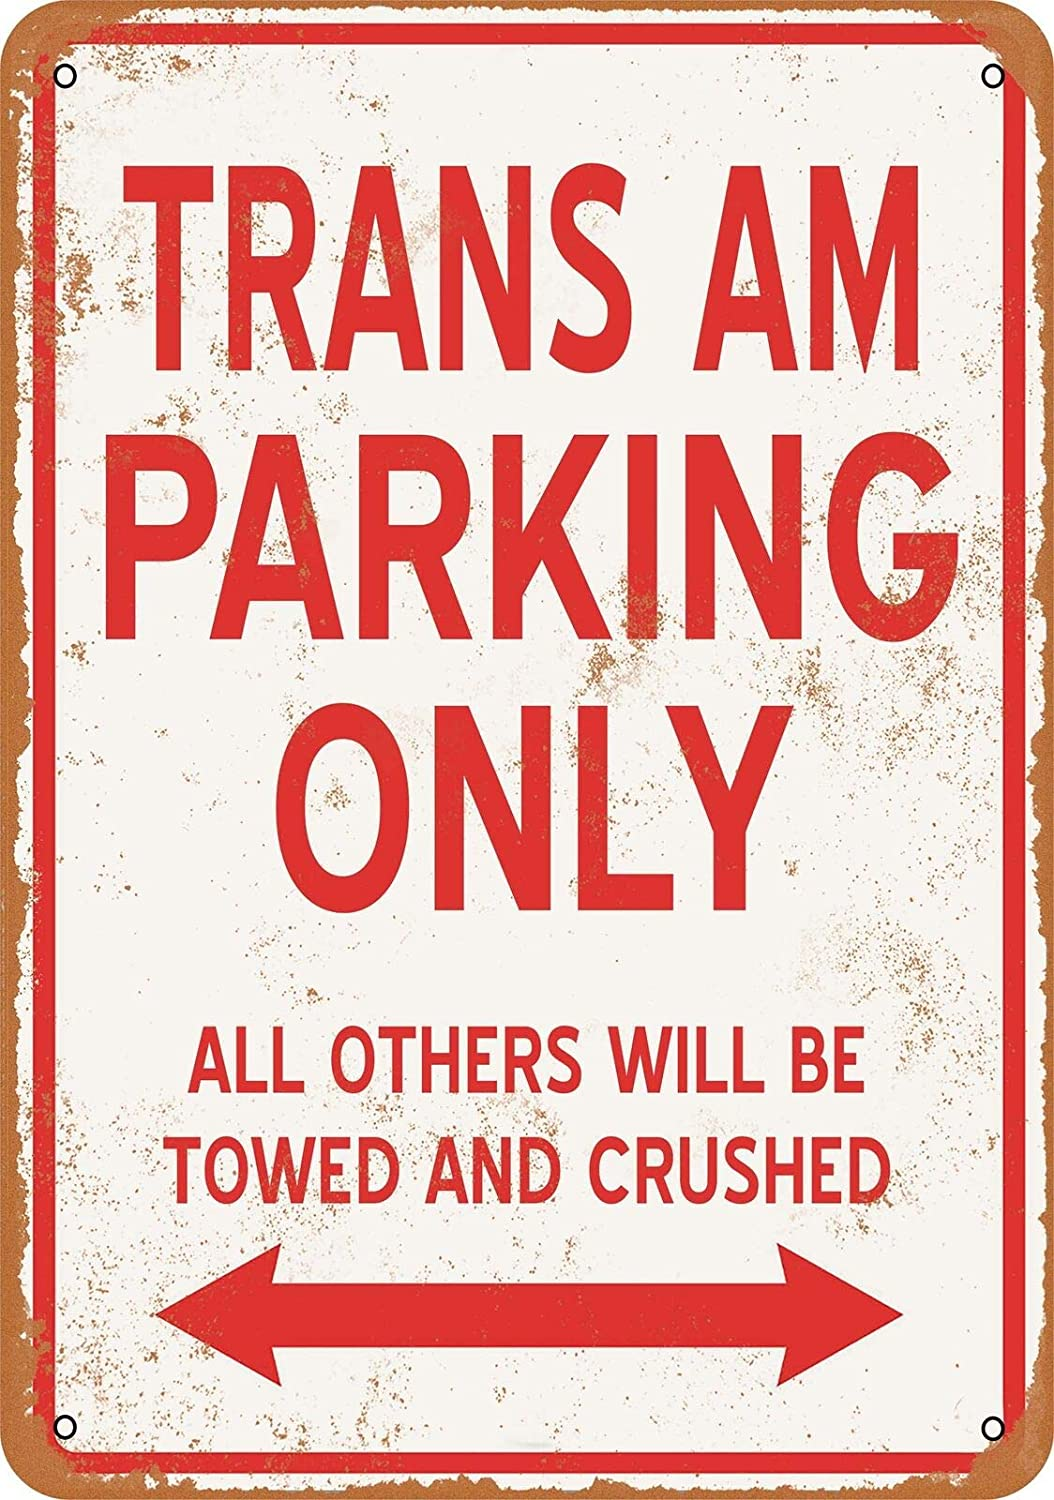 Tin Sign Metal Street Trans AM Parking ONLY Vintage Look 8x12inches, Metal Tin Sign Wall Decor